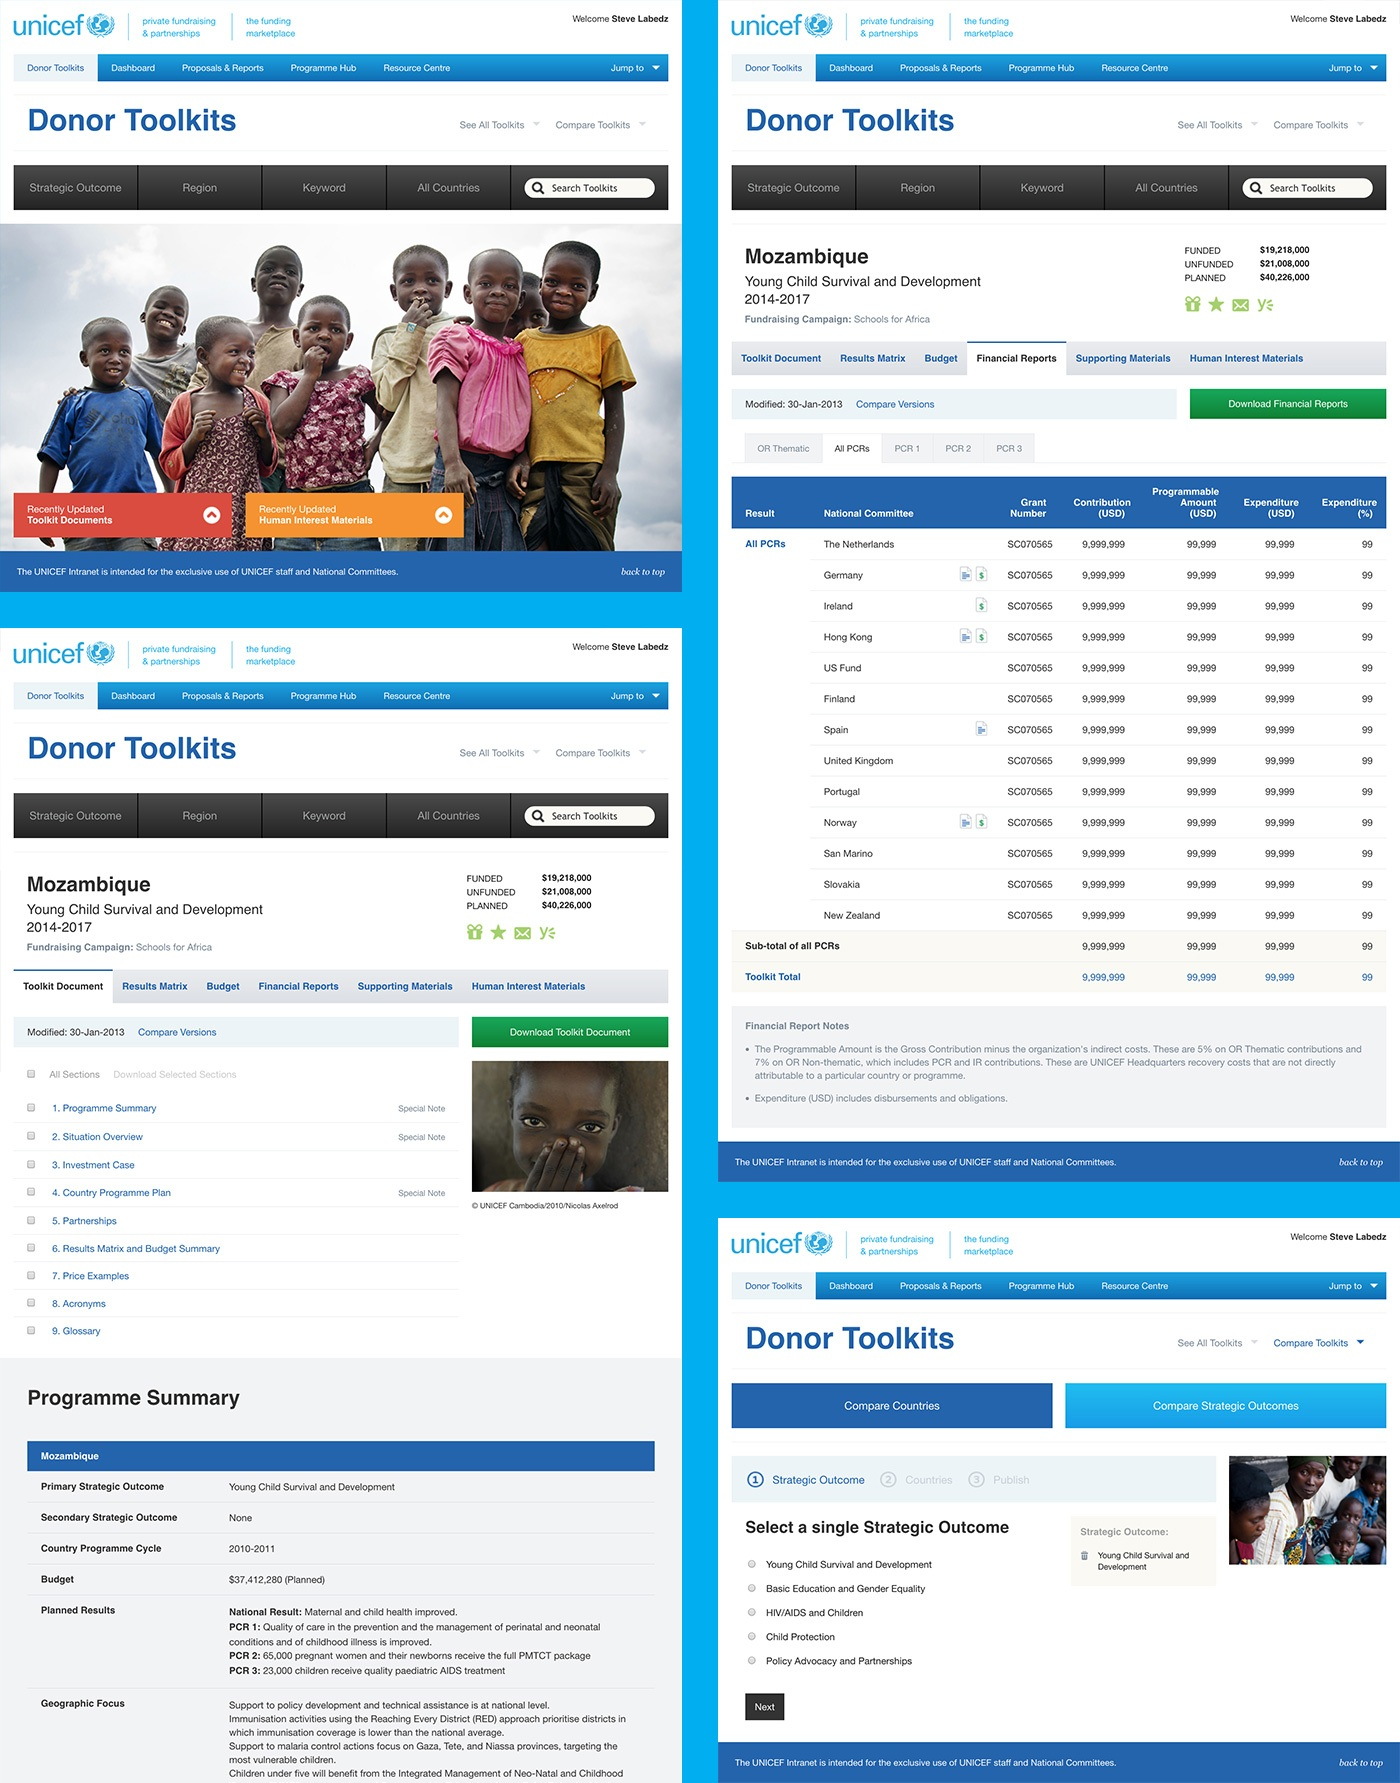 <p>The Funding Marketplace hosts a wealth of information made readily available to donors regarding programmes and initiatives associated with regions and countries.</p>